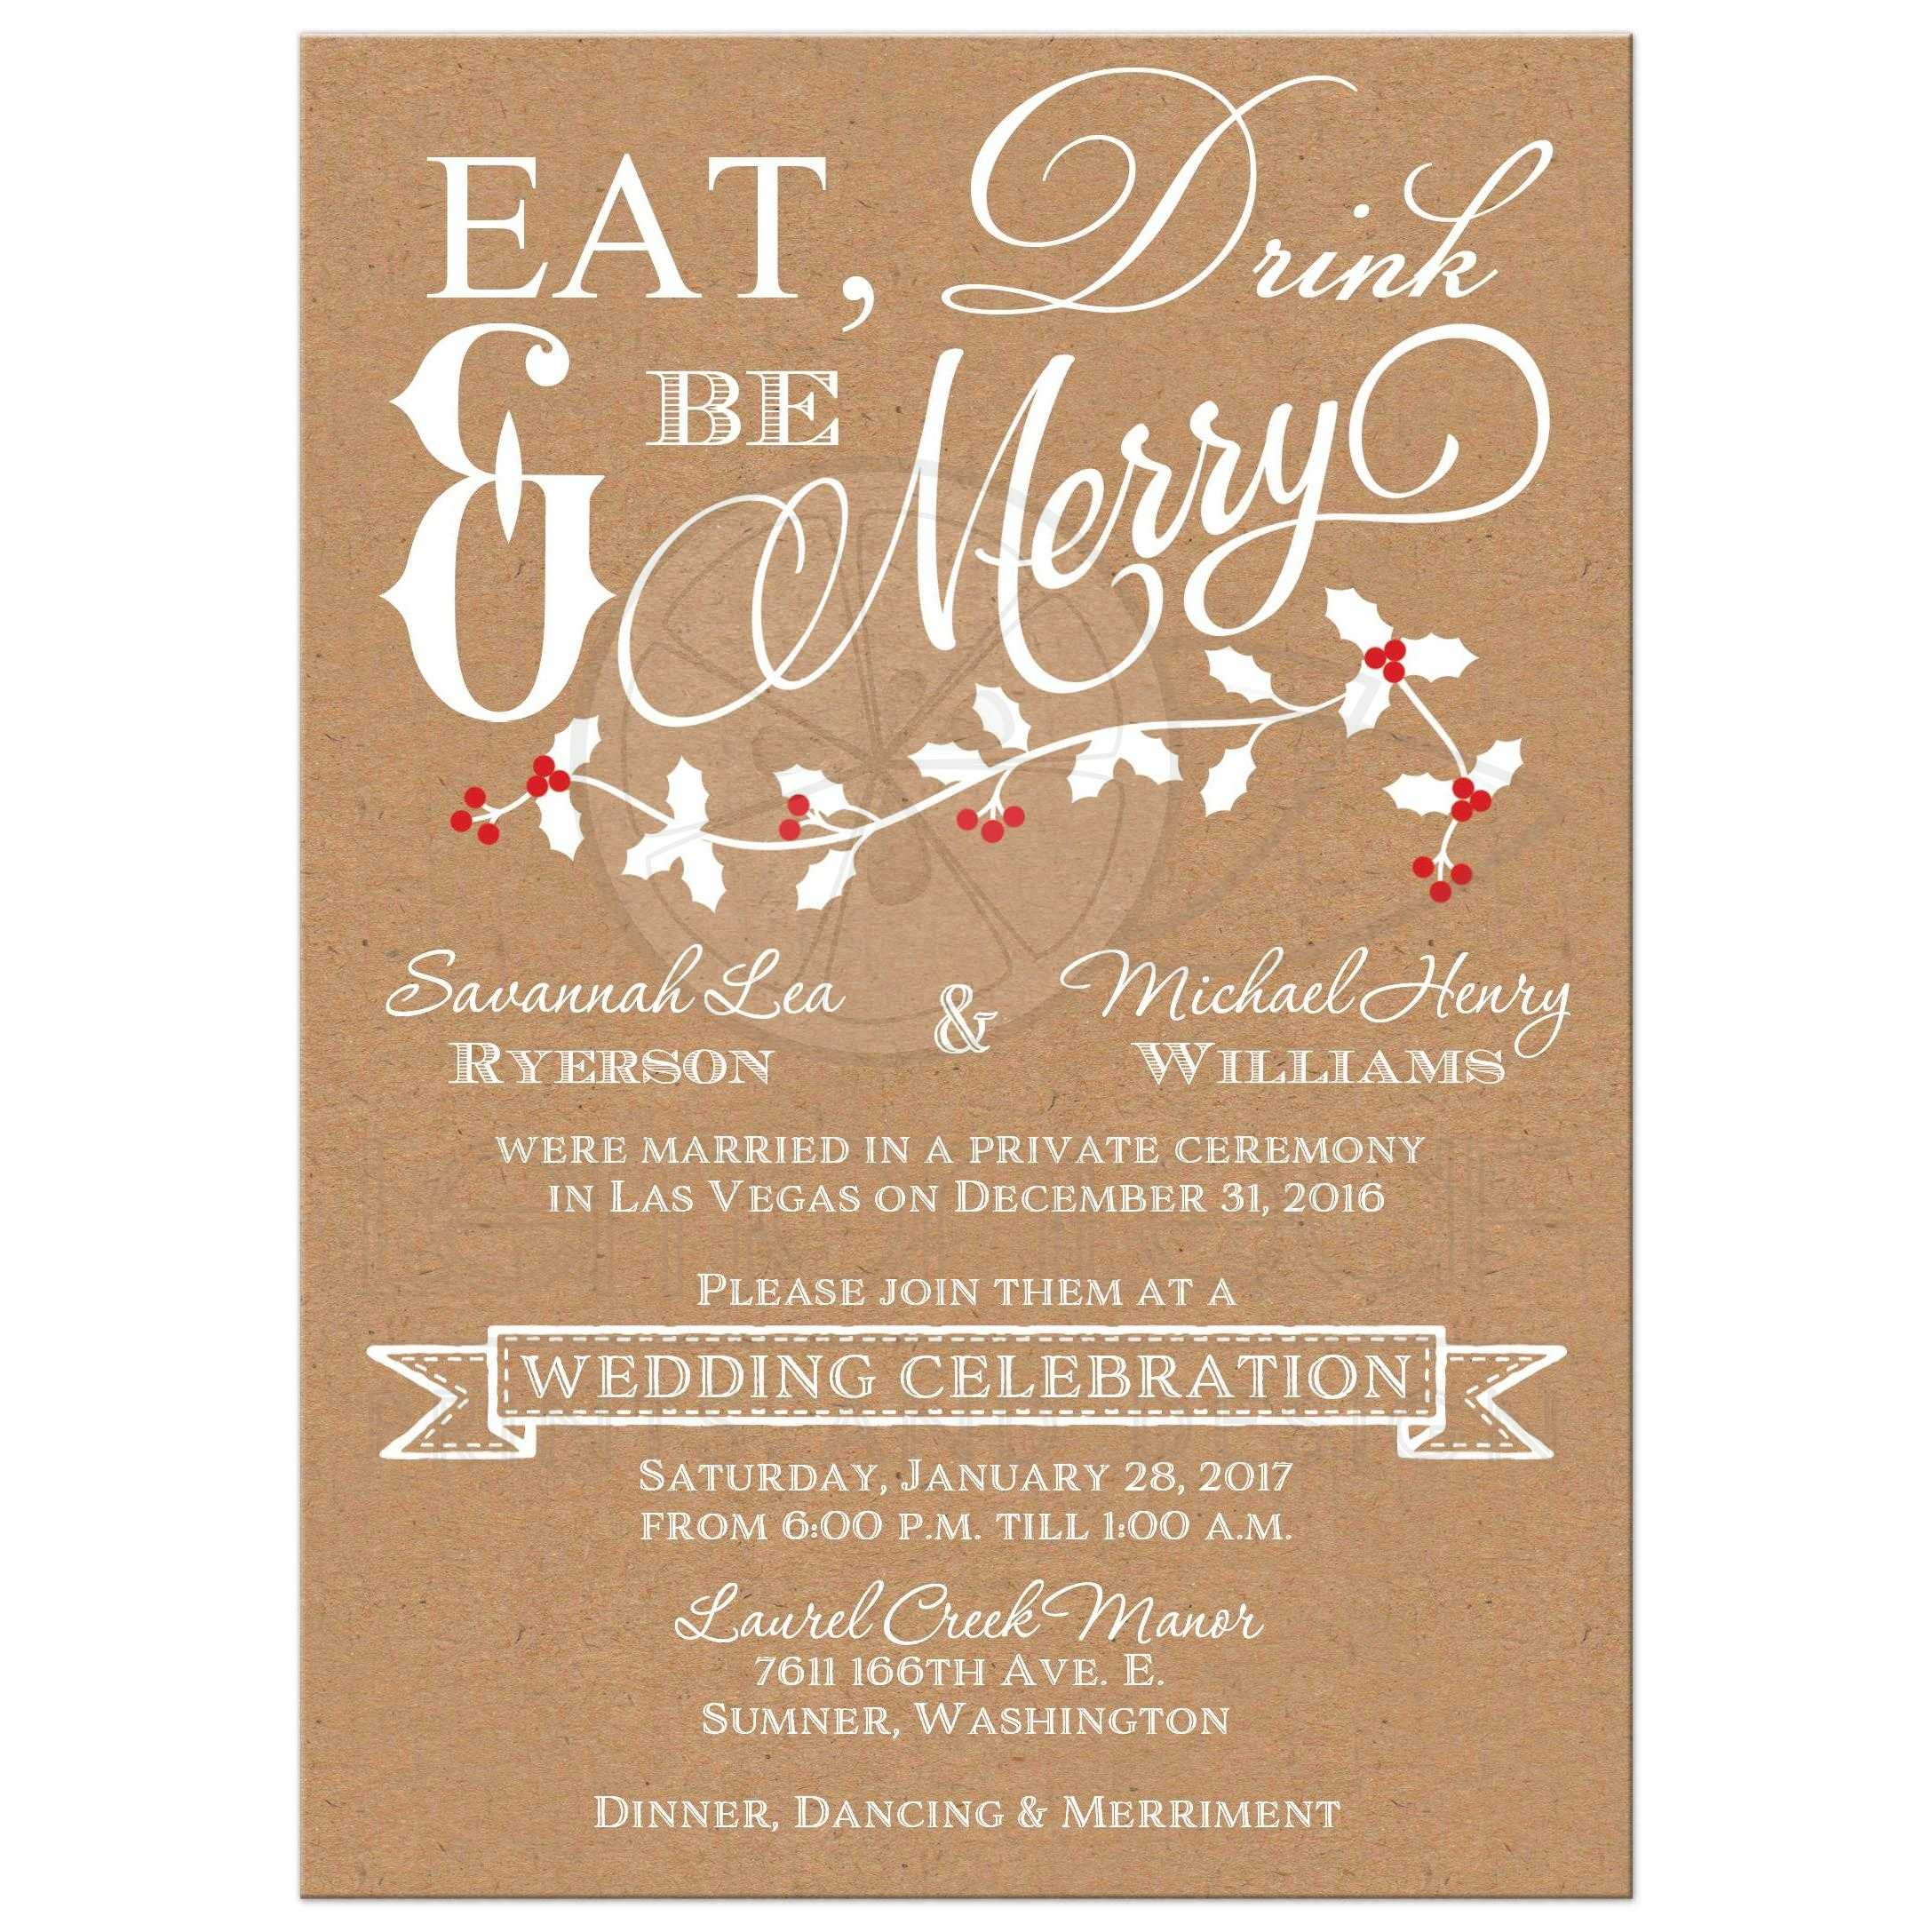 Eat, Drink And Be Merry Post Wedding Reception Invitation With Holly Leaves  And Red ...